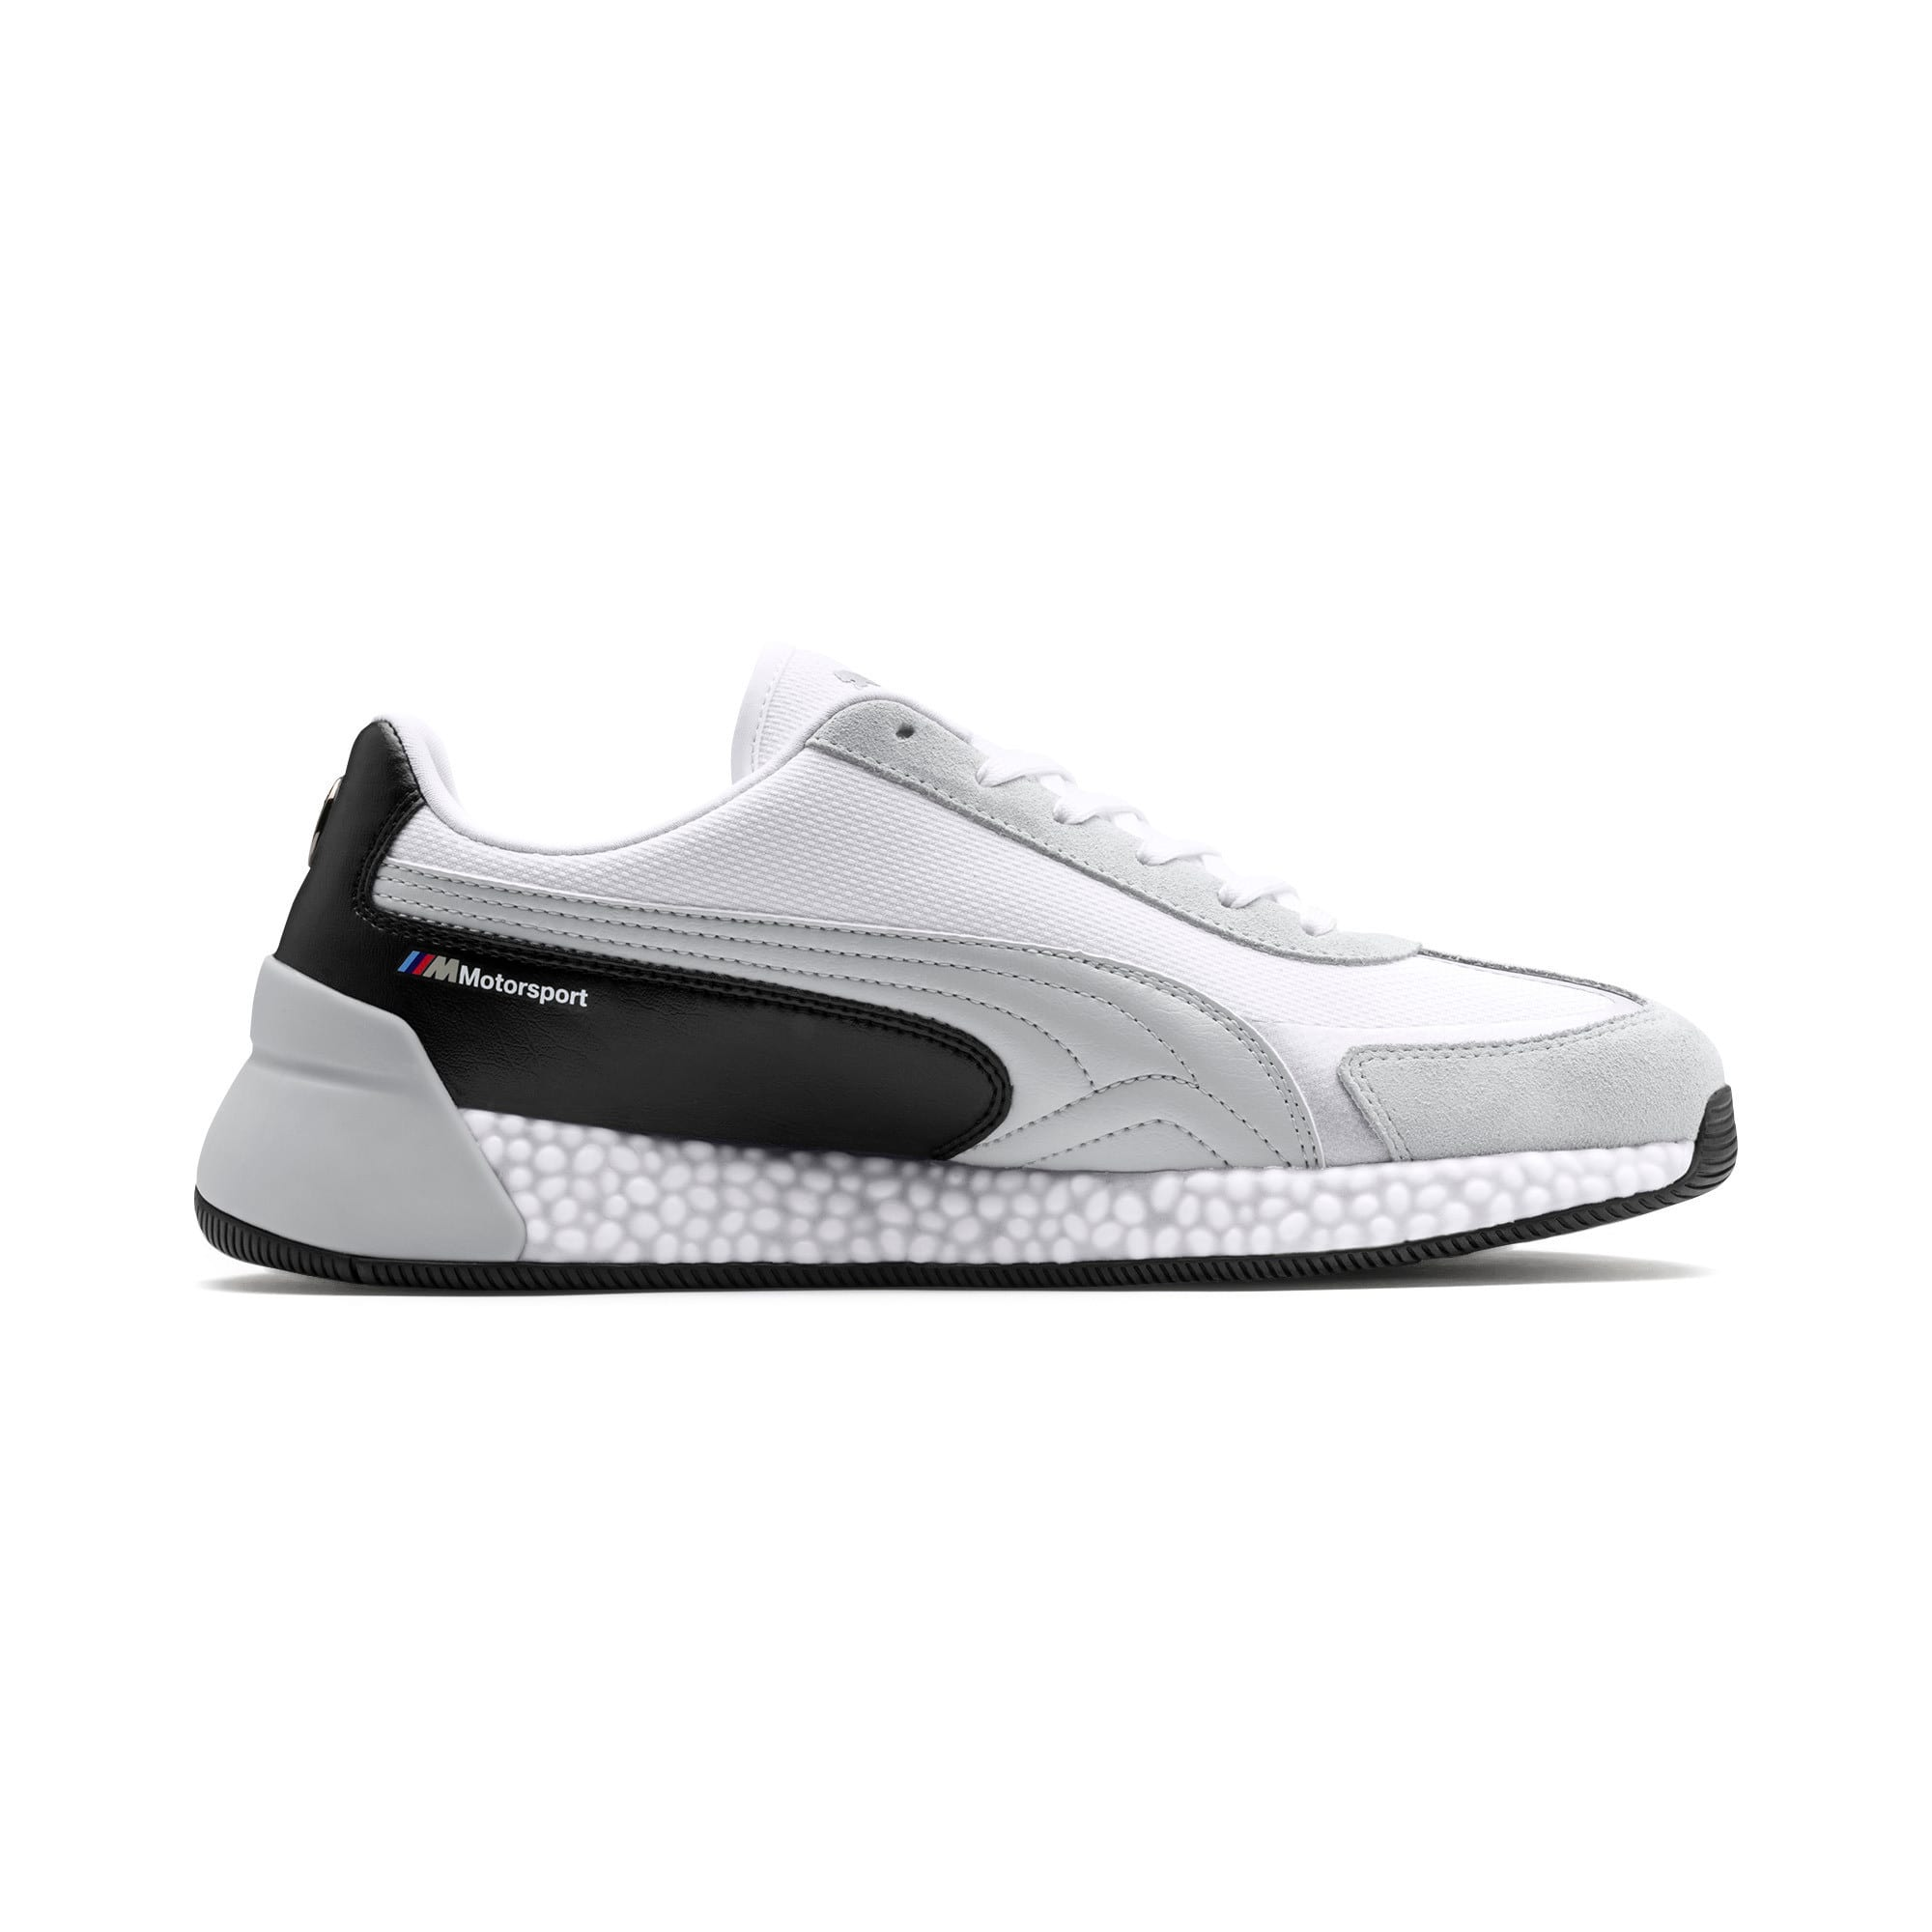 Thumbnail 6 of BMW M Motorsport Speed HYBRID Trainers, White-Glacier Gray-Black, medium